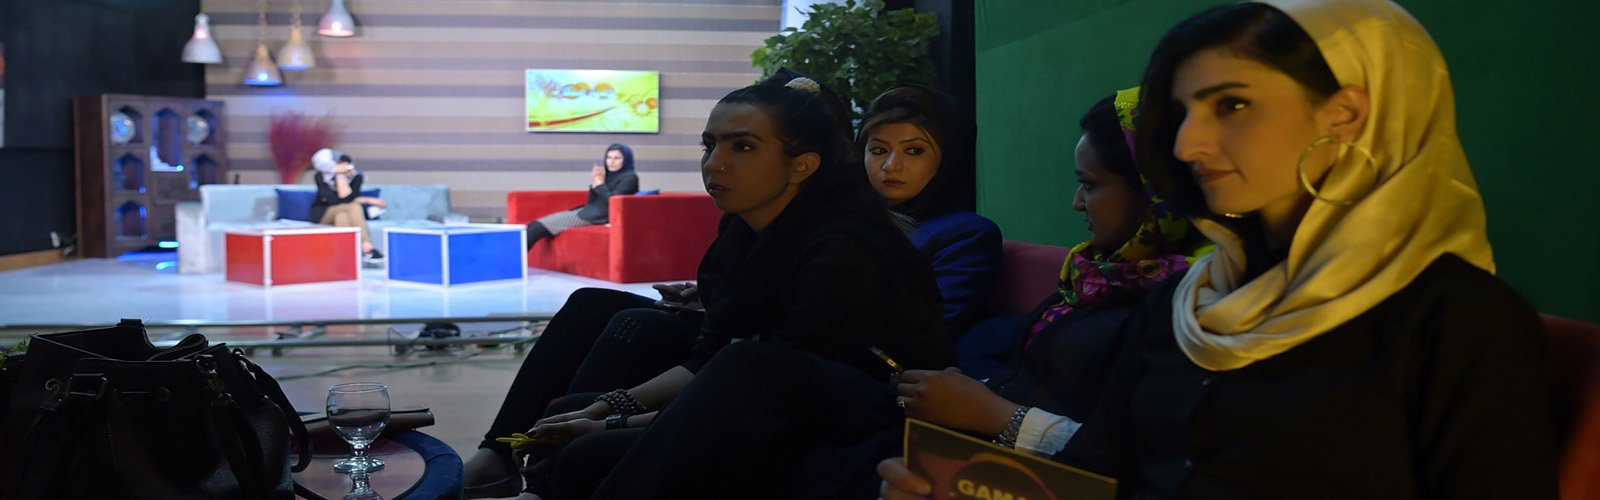 New magazine and TV channel give Afghan women a cautious voice